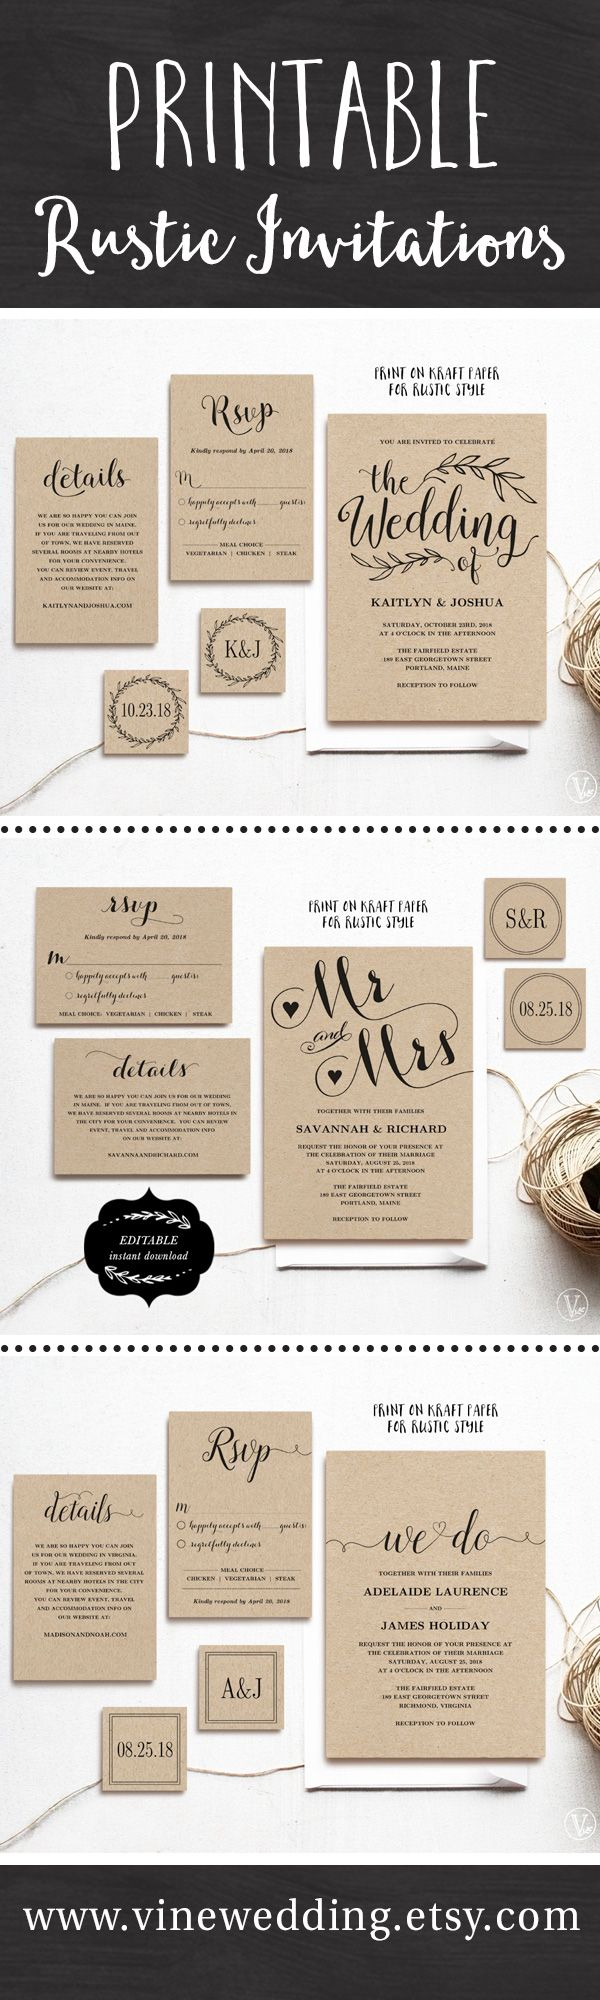 how much do invitations for wedding cost%0A Beautiful rustic wedding invitations  Editable instant download templates  you can print as many as you